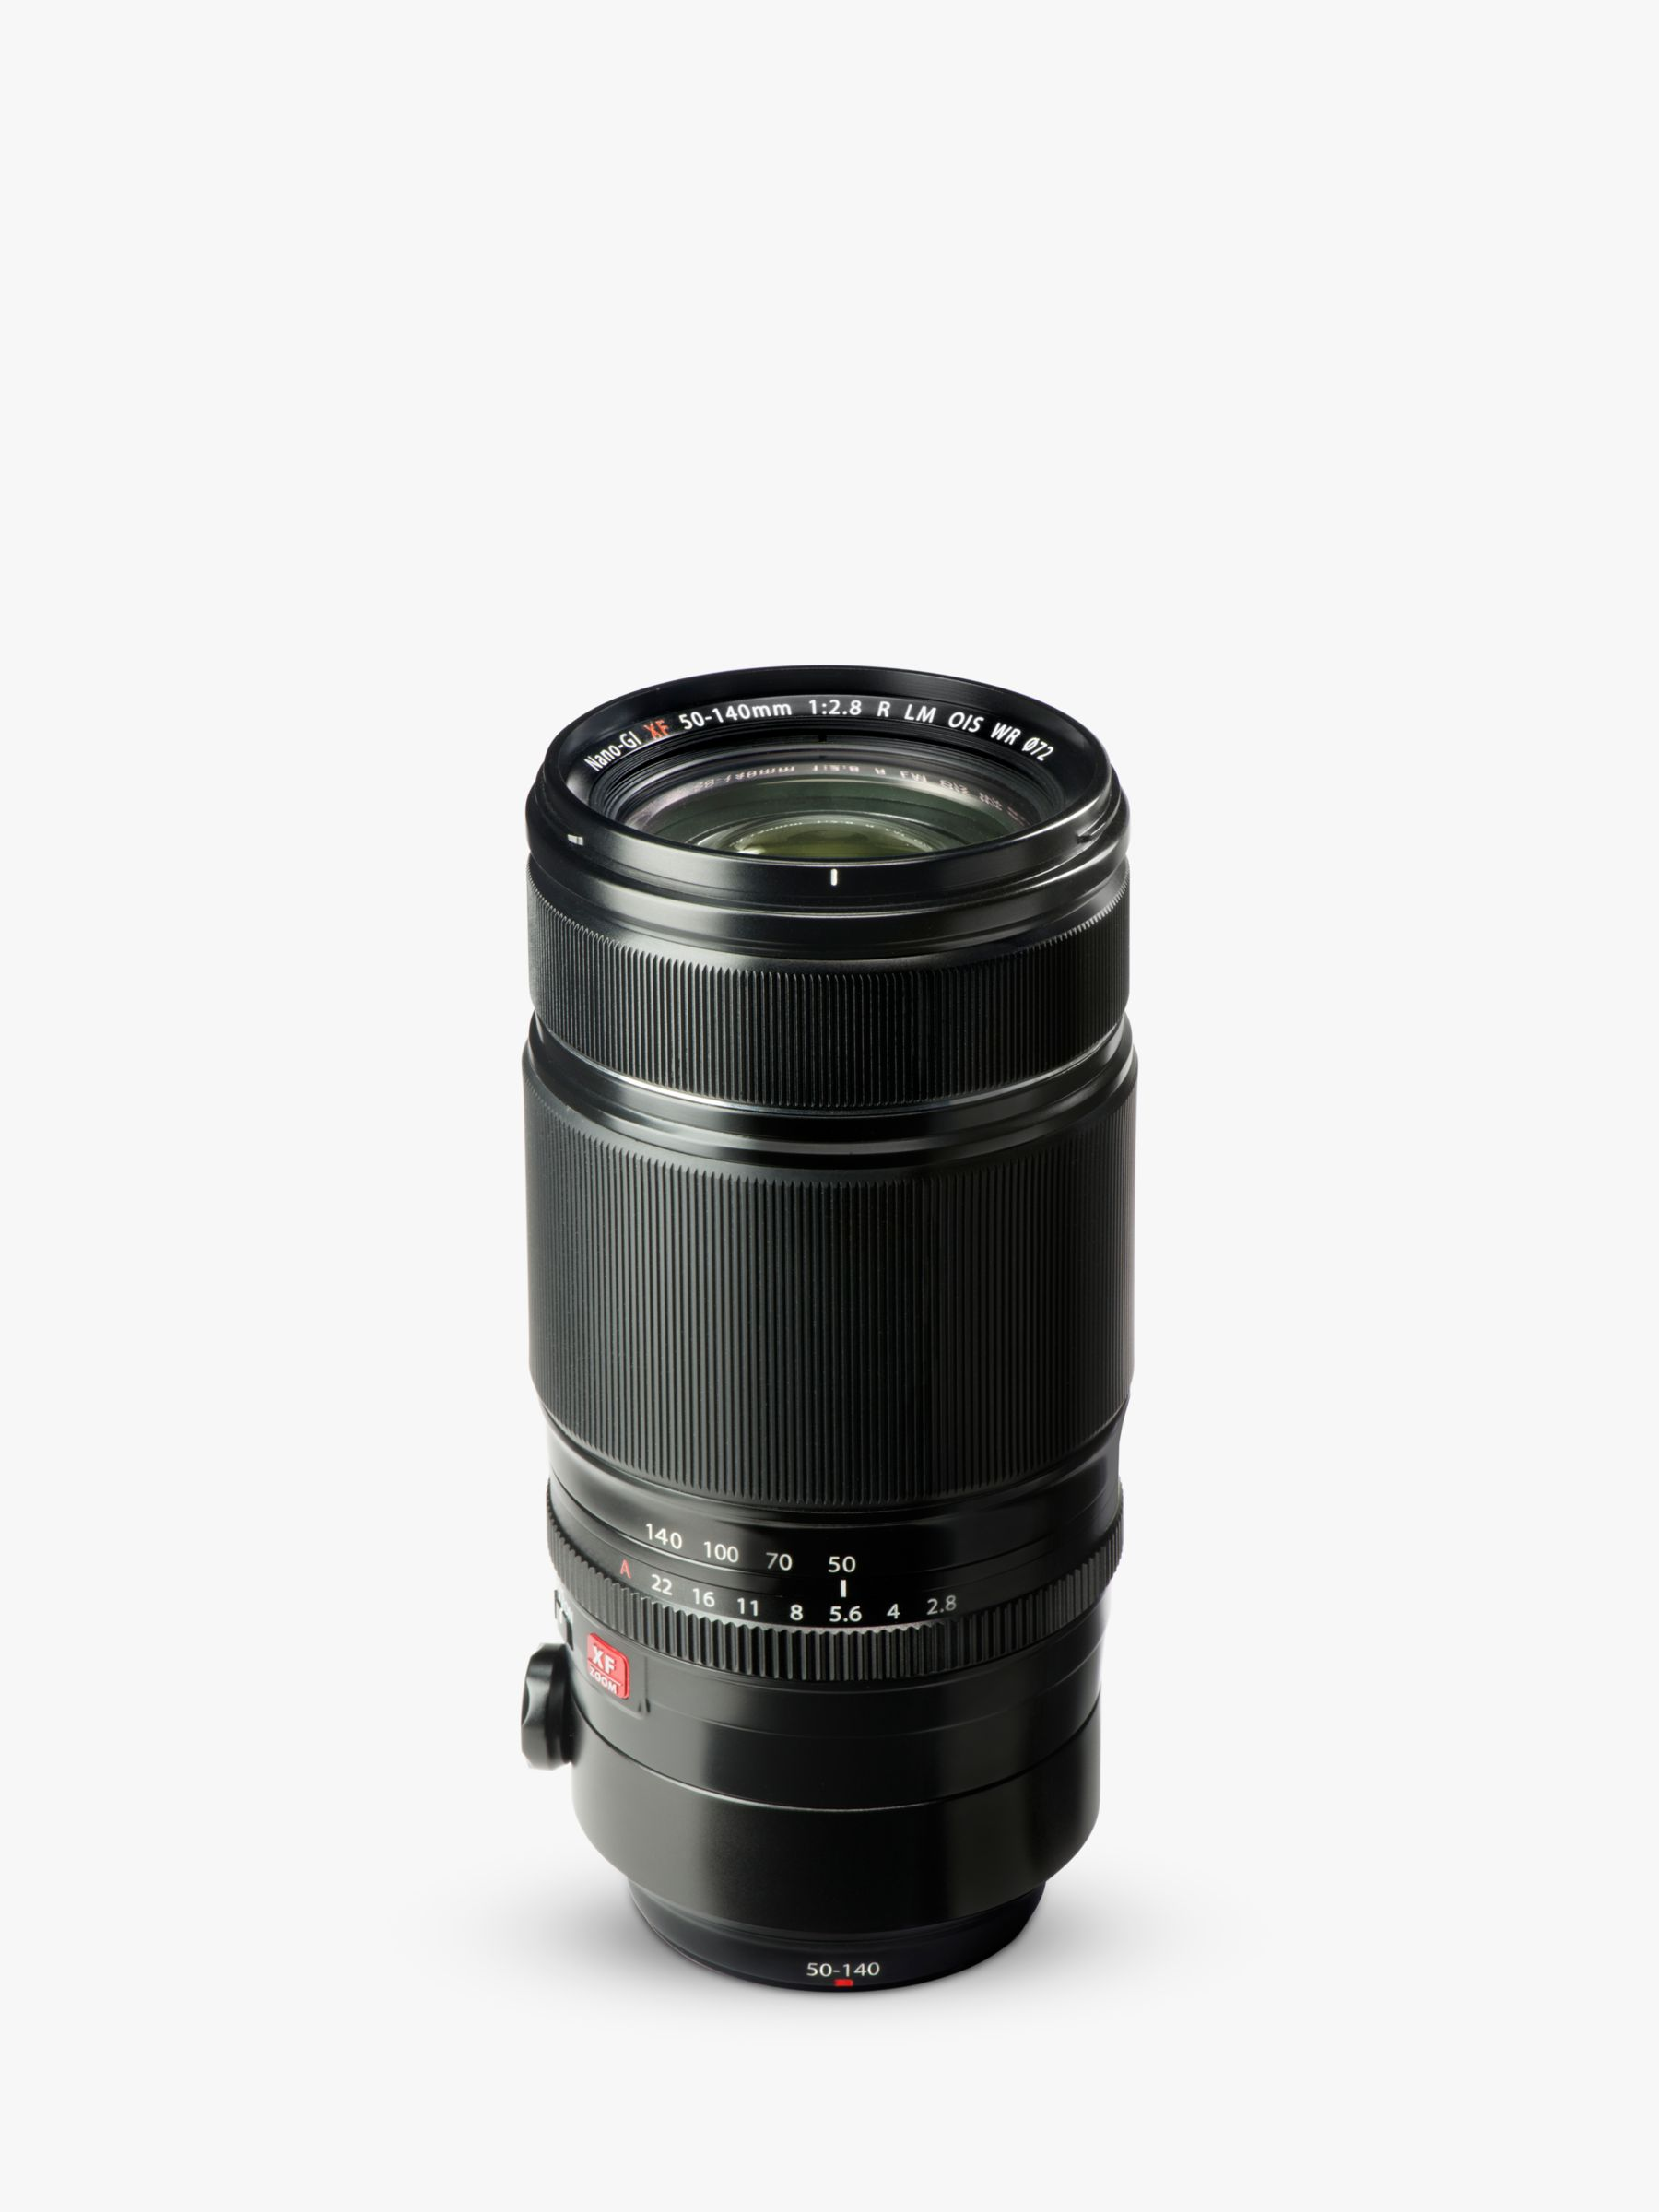 Image of Fujifilm XF50140mm F28 R LM OIS WR Telephoto Lens